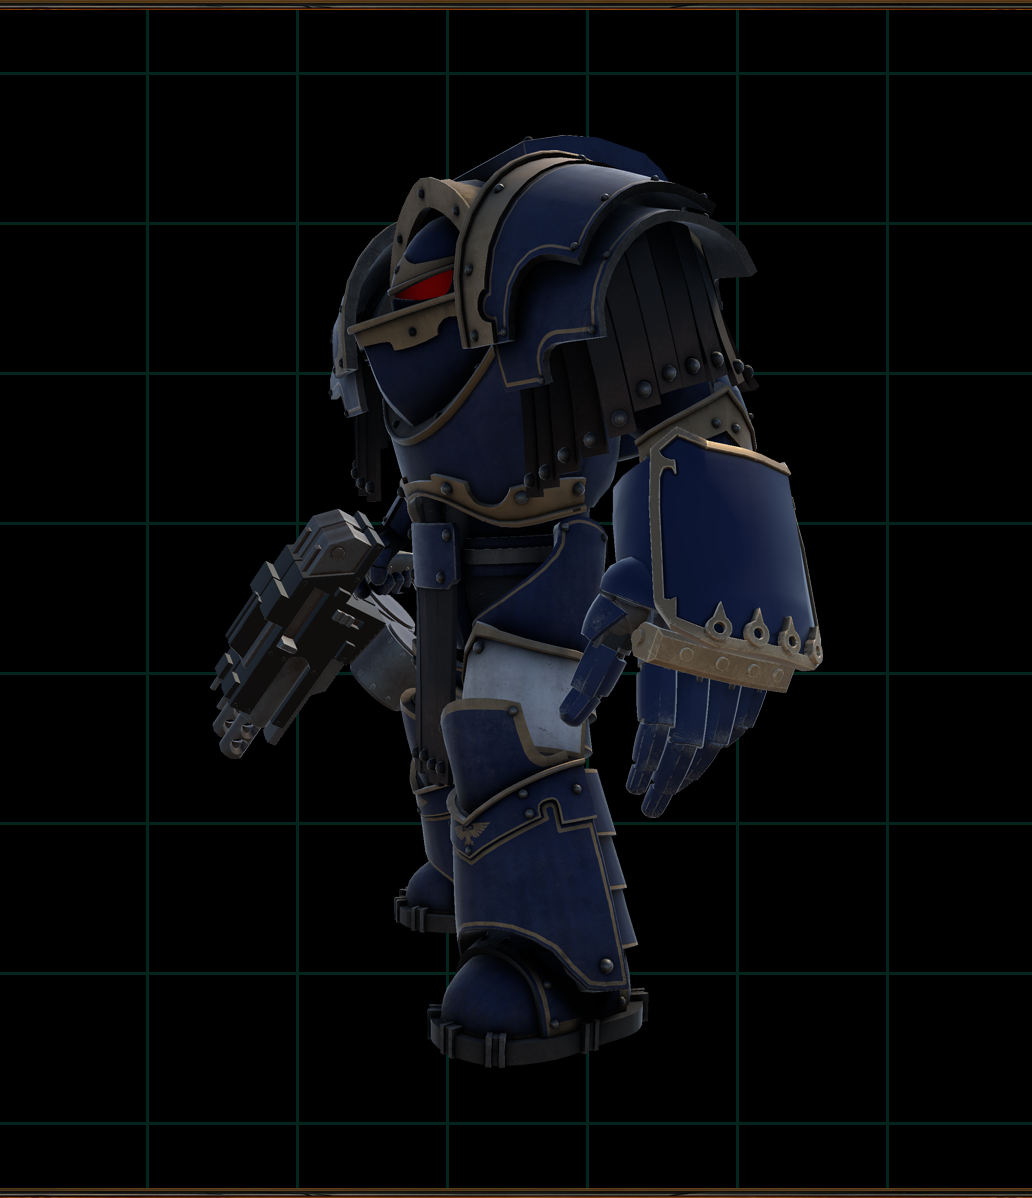 - The ponderous and destructive force of a Terminator's Power Fist against heavy armor made it a perfect example case for what we could do with the Armor System. Look forward to their crushing power in a future update.